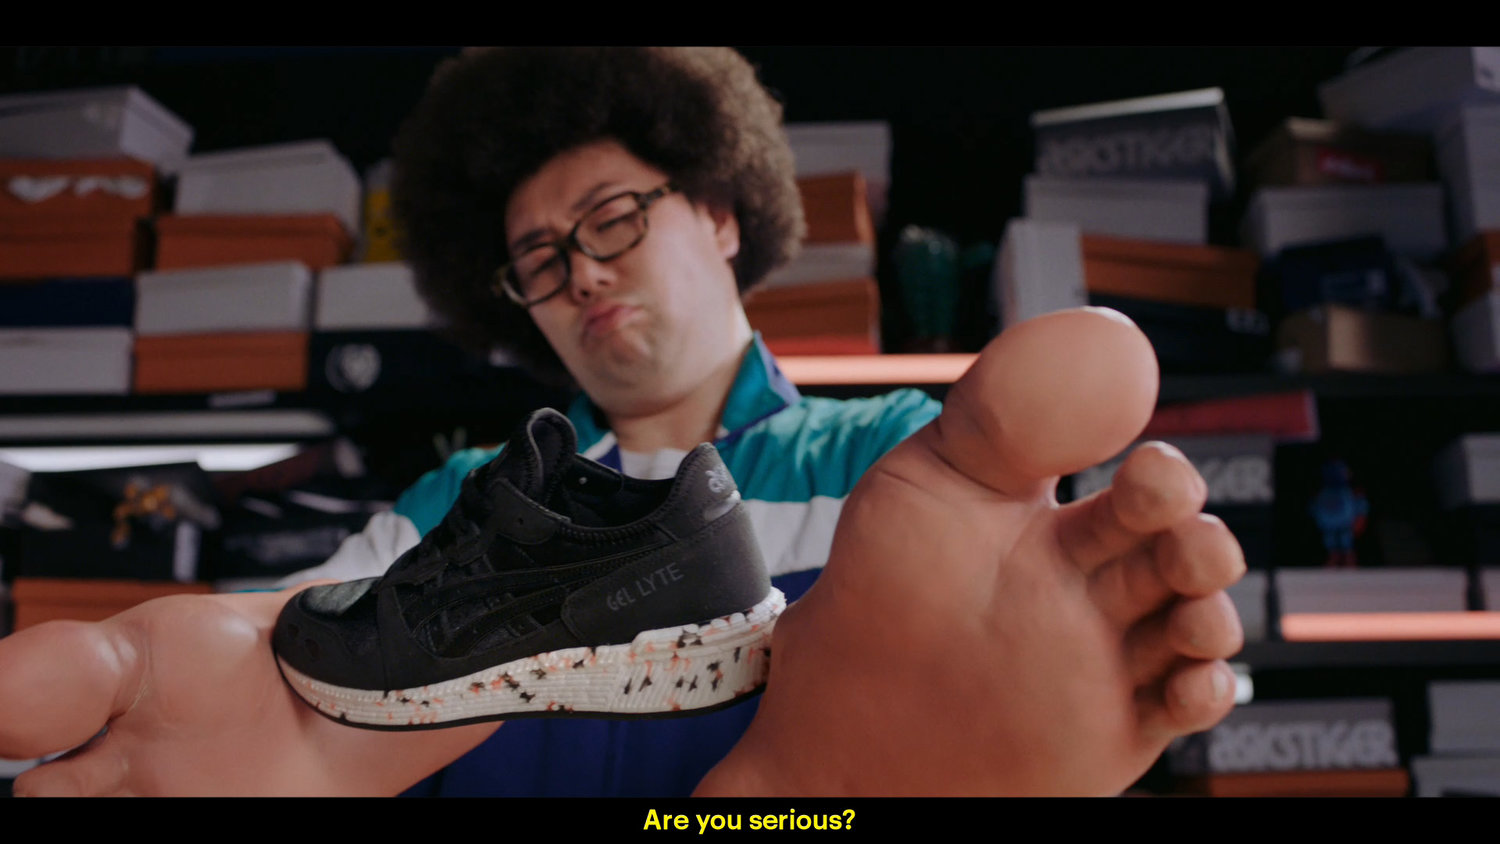 ASICS - What The Gel? - Commercial